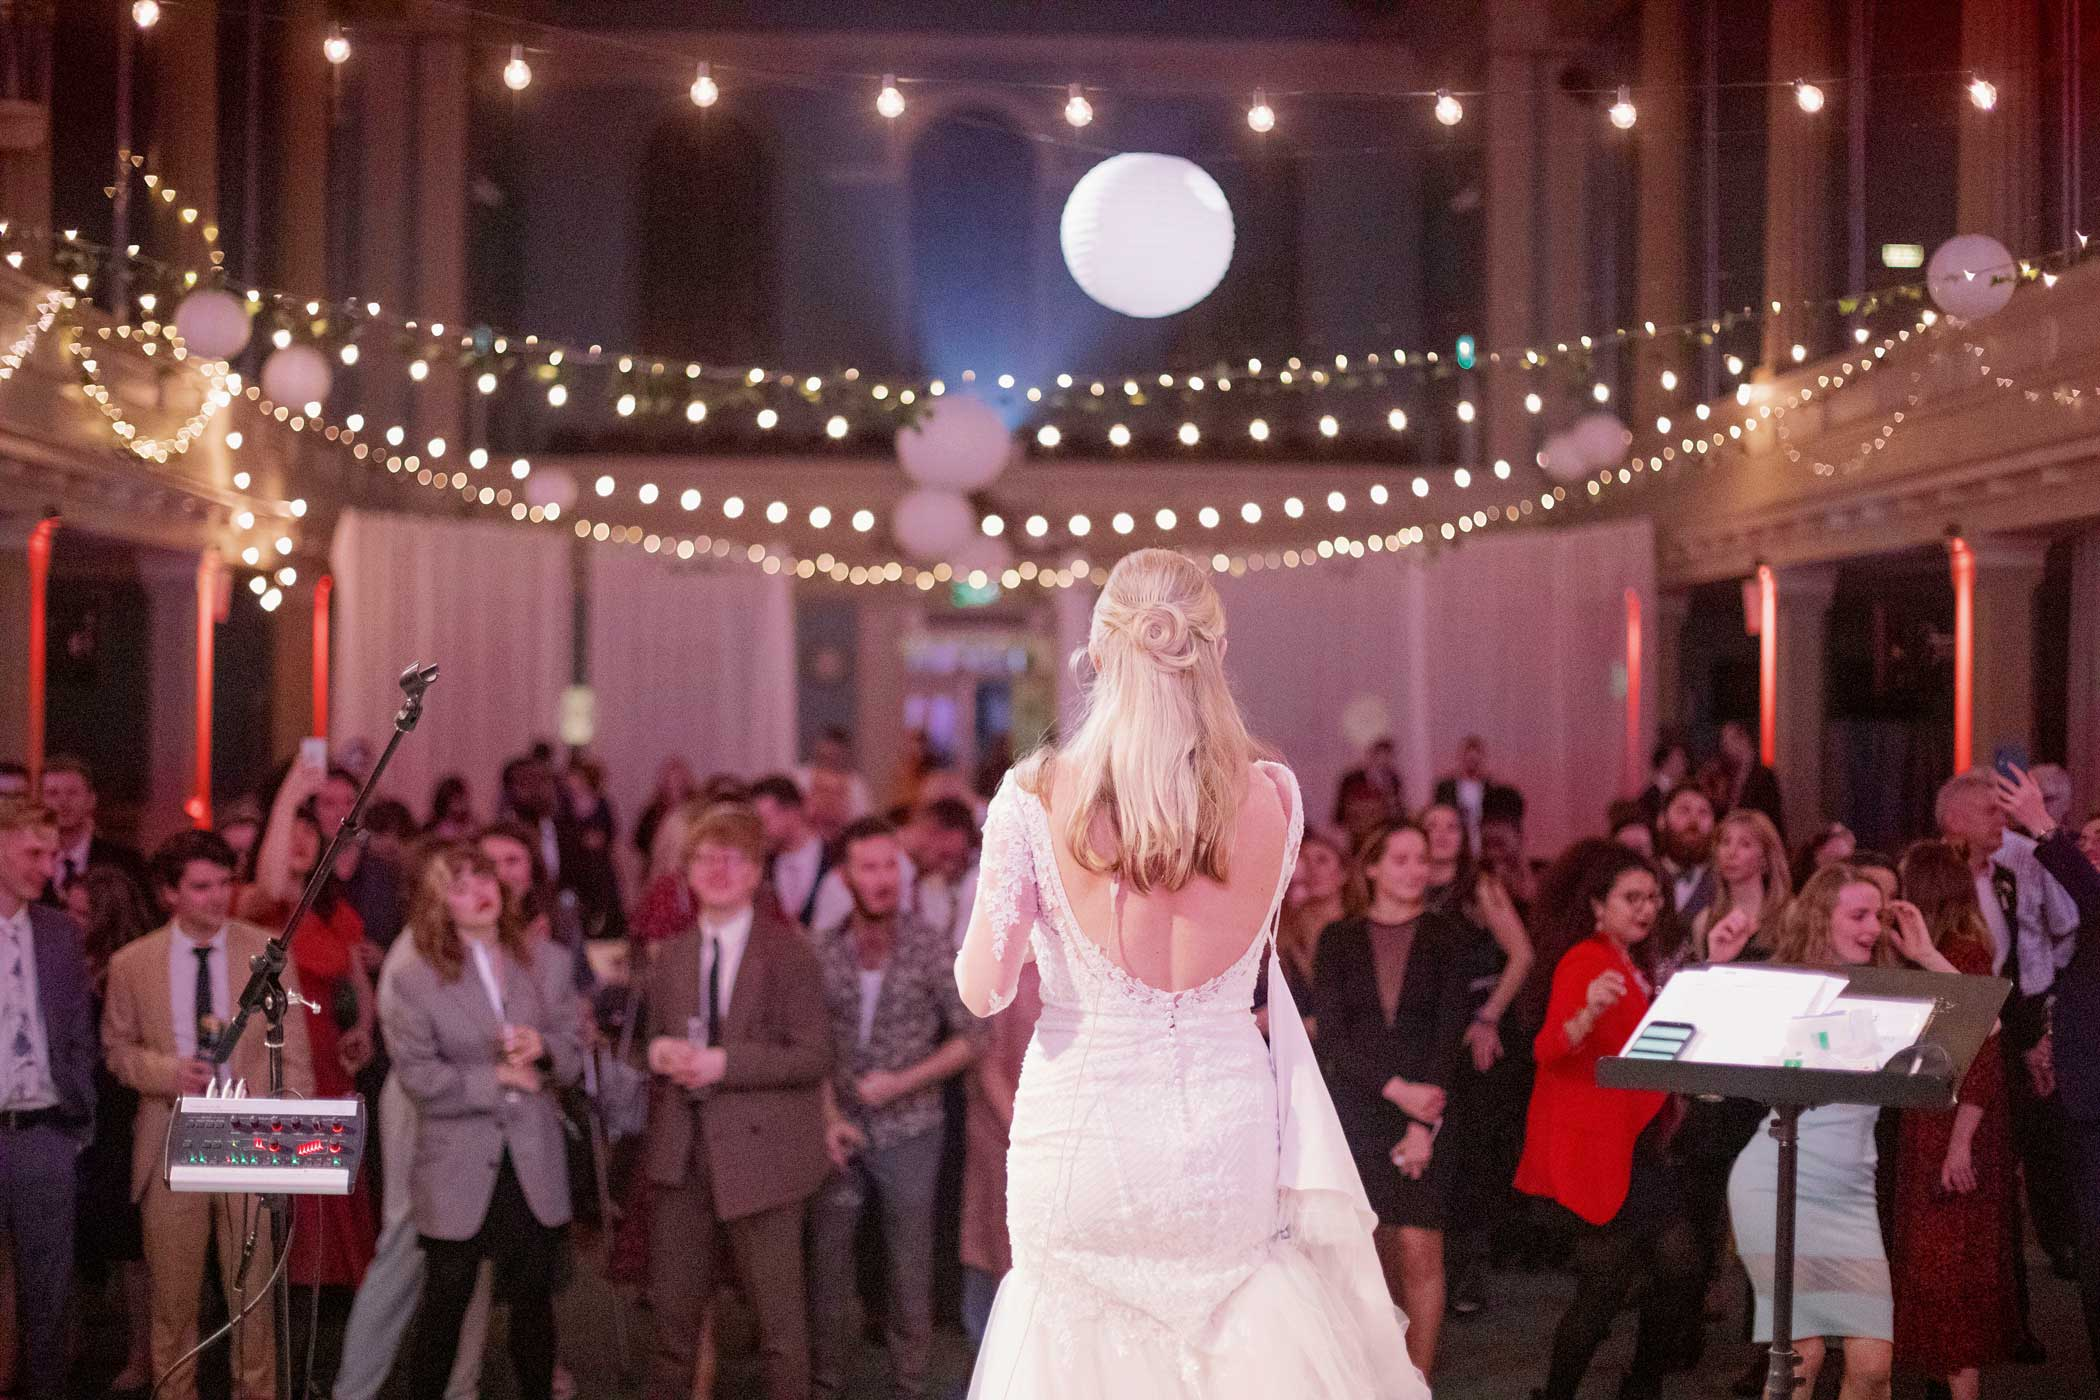 Bride singing to room of dancing guests with festoon lighting